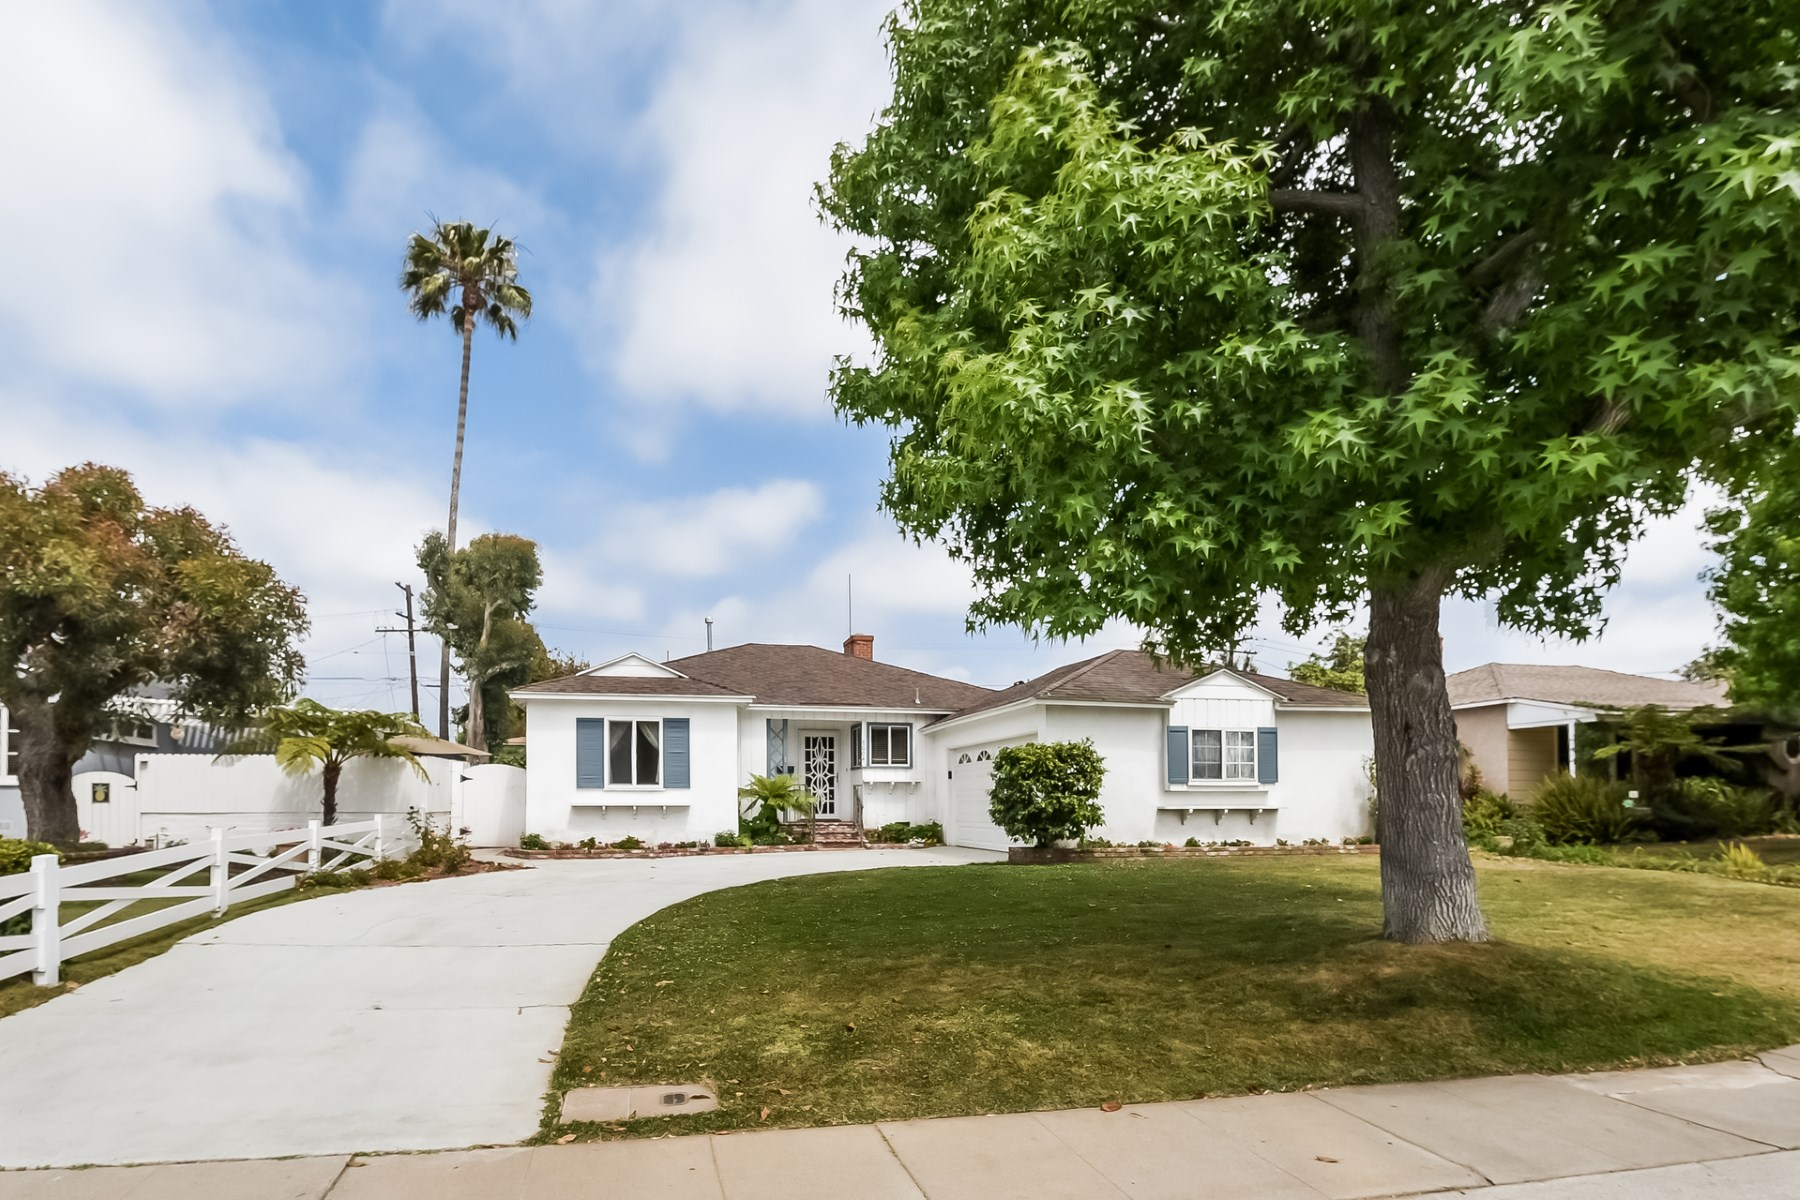 단독 가정 주택 용 매매 에 Charming Home in Kentwood HOA 8004 Cowan Avenue Westchester, Los Angeles, 캘리포니아, 90045 미국